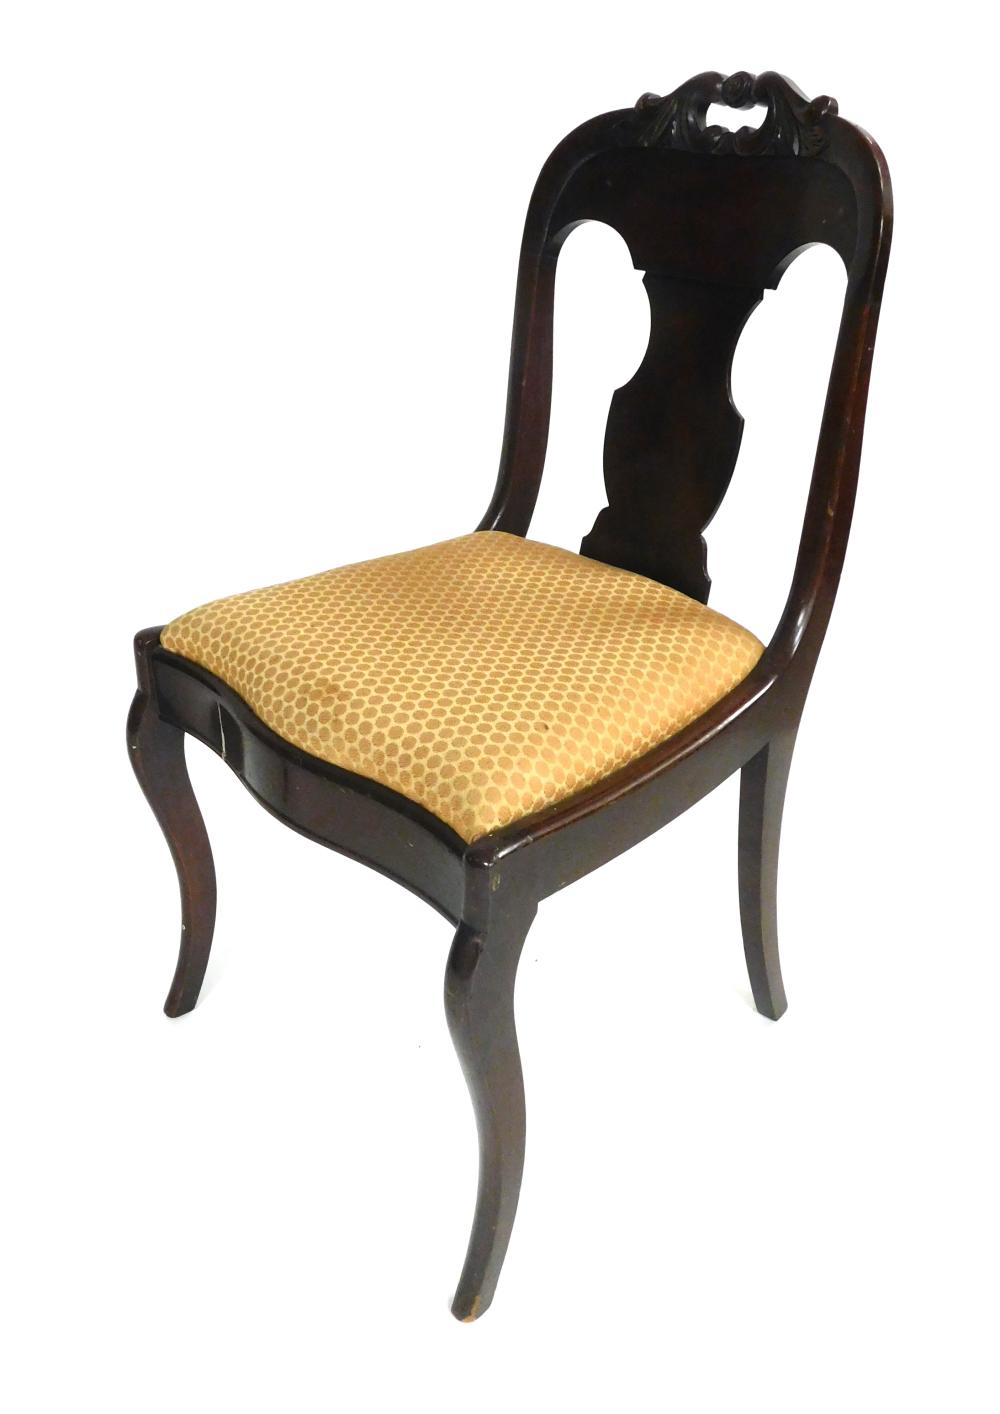 Two Empire style mahogany chairs along with small stand, 19th/ 20th C., mahogany, details include: one armchair and one side chair w...